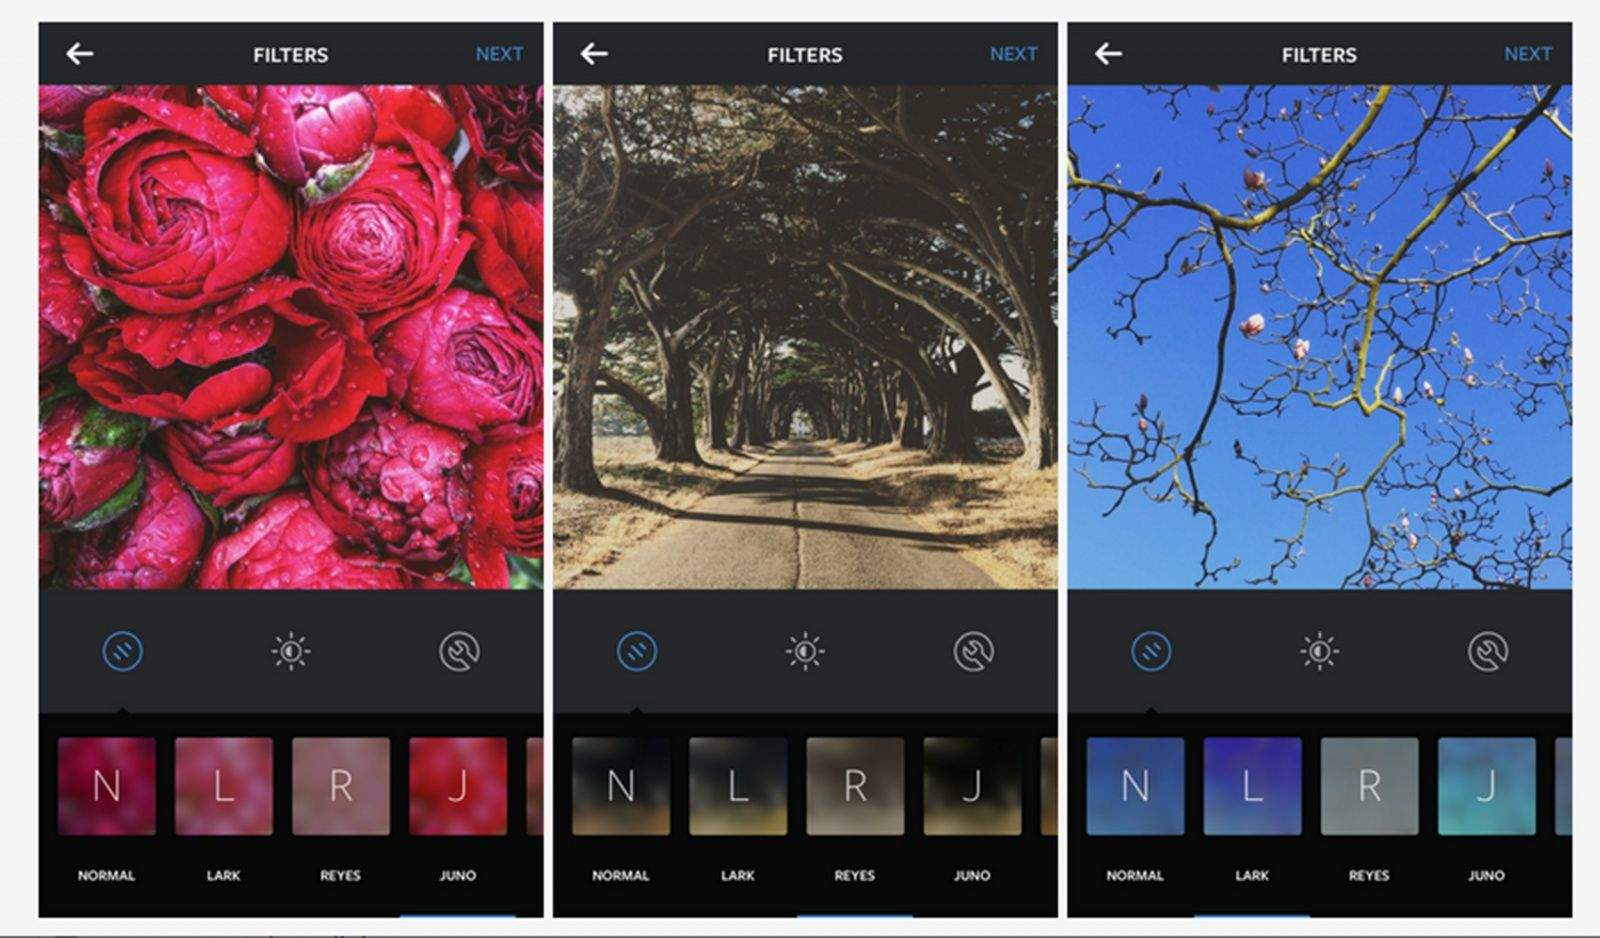 Lark, Reyes and Juno are three new filters for Instagram. Photo: Instagram